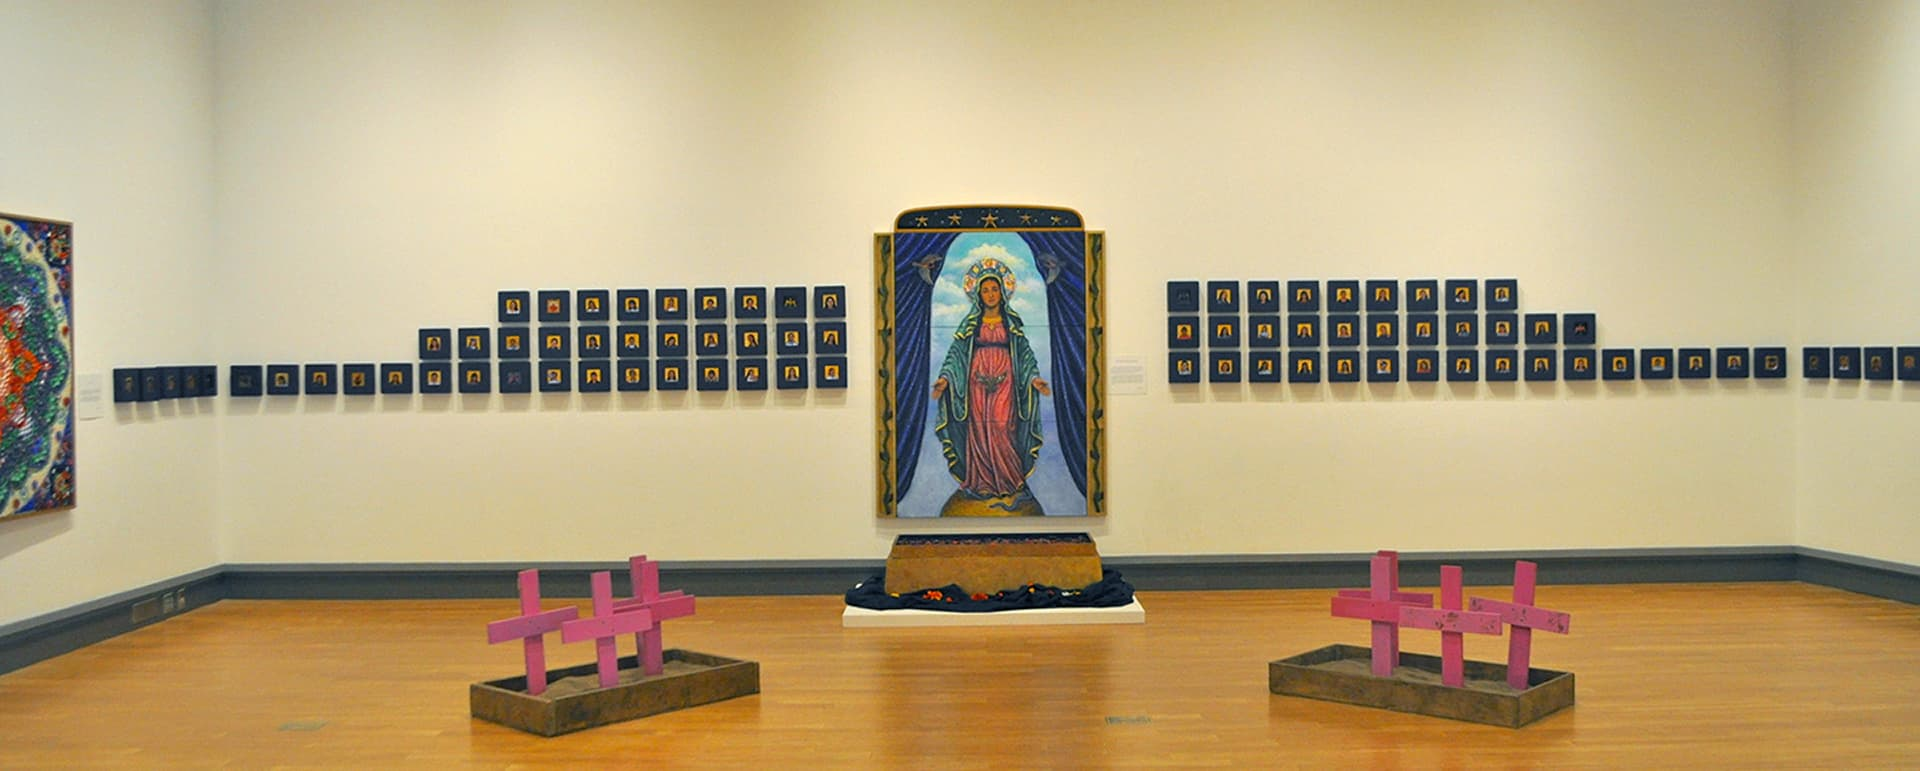 View of McCutchan/Pace gallery, with Kahlo's work on display, with red crosses on the floor